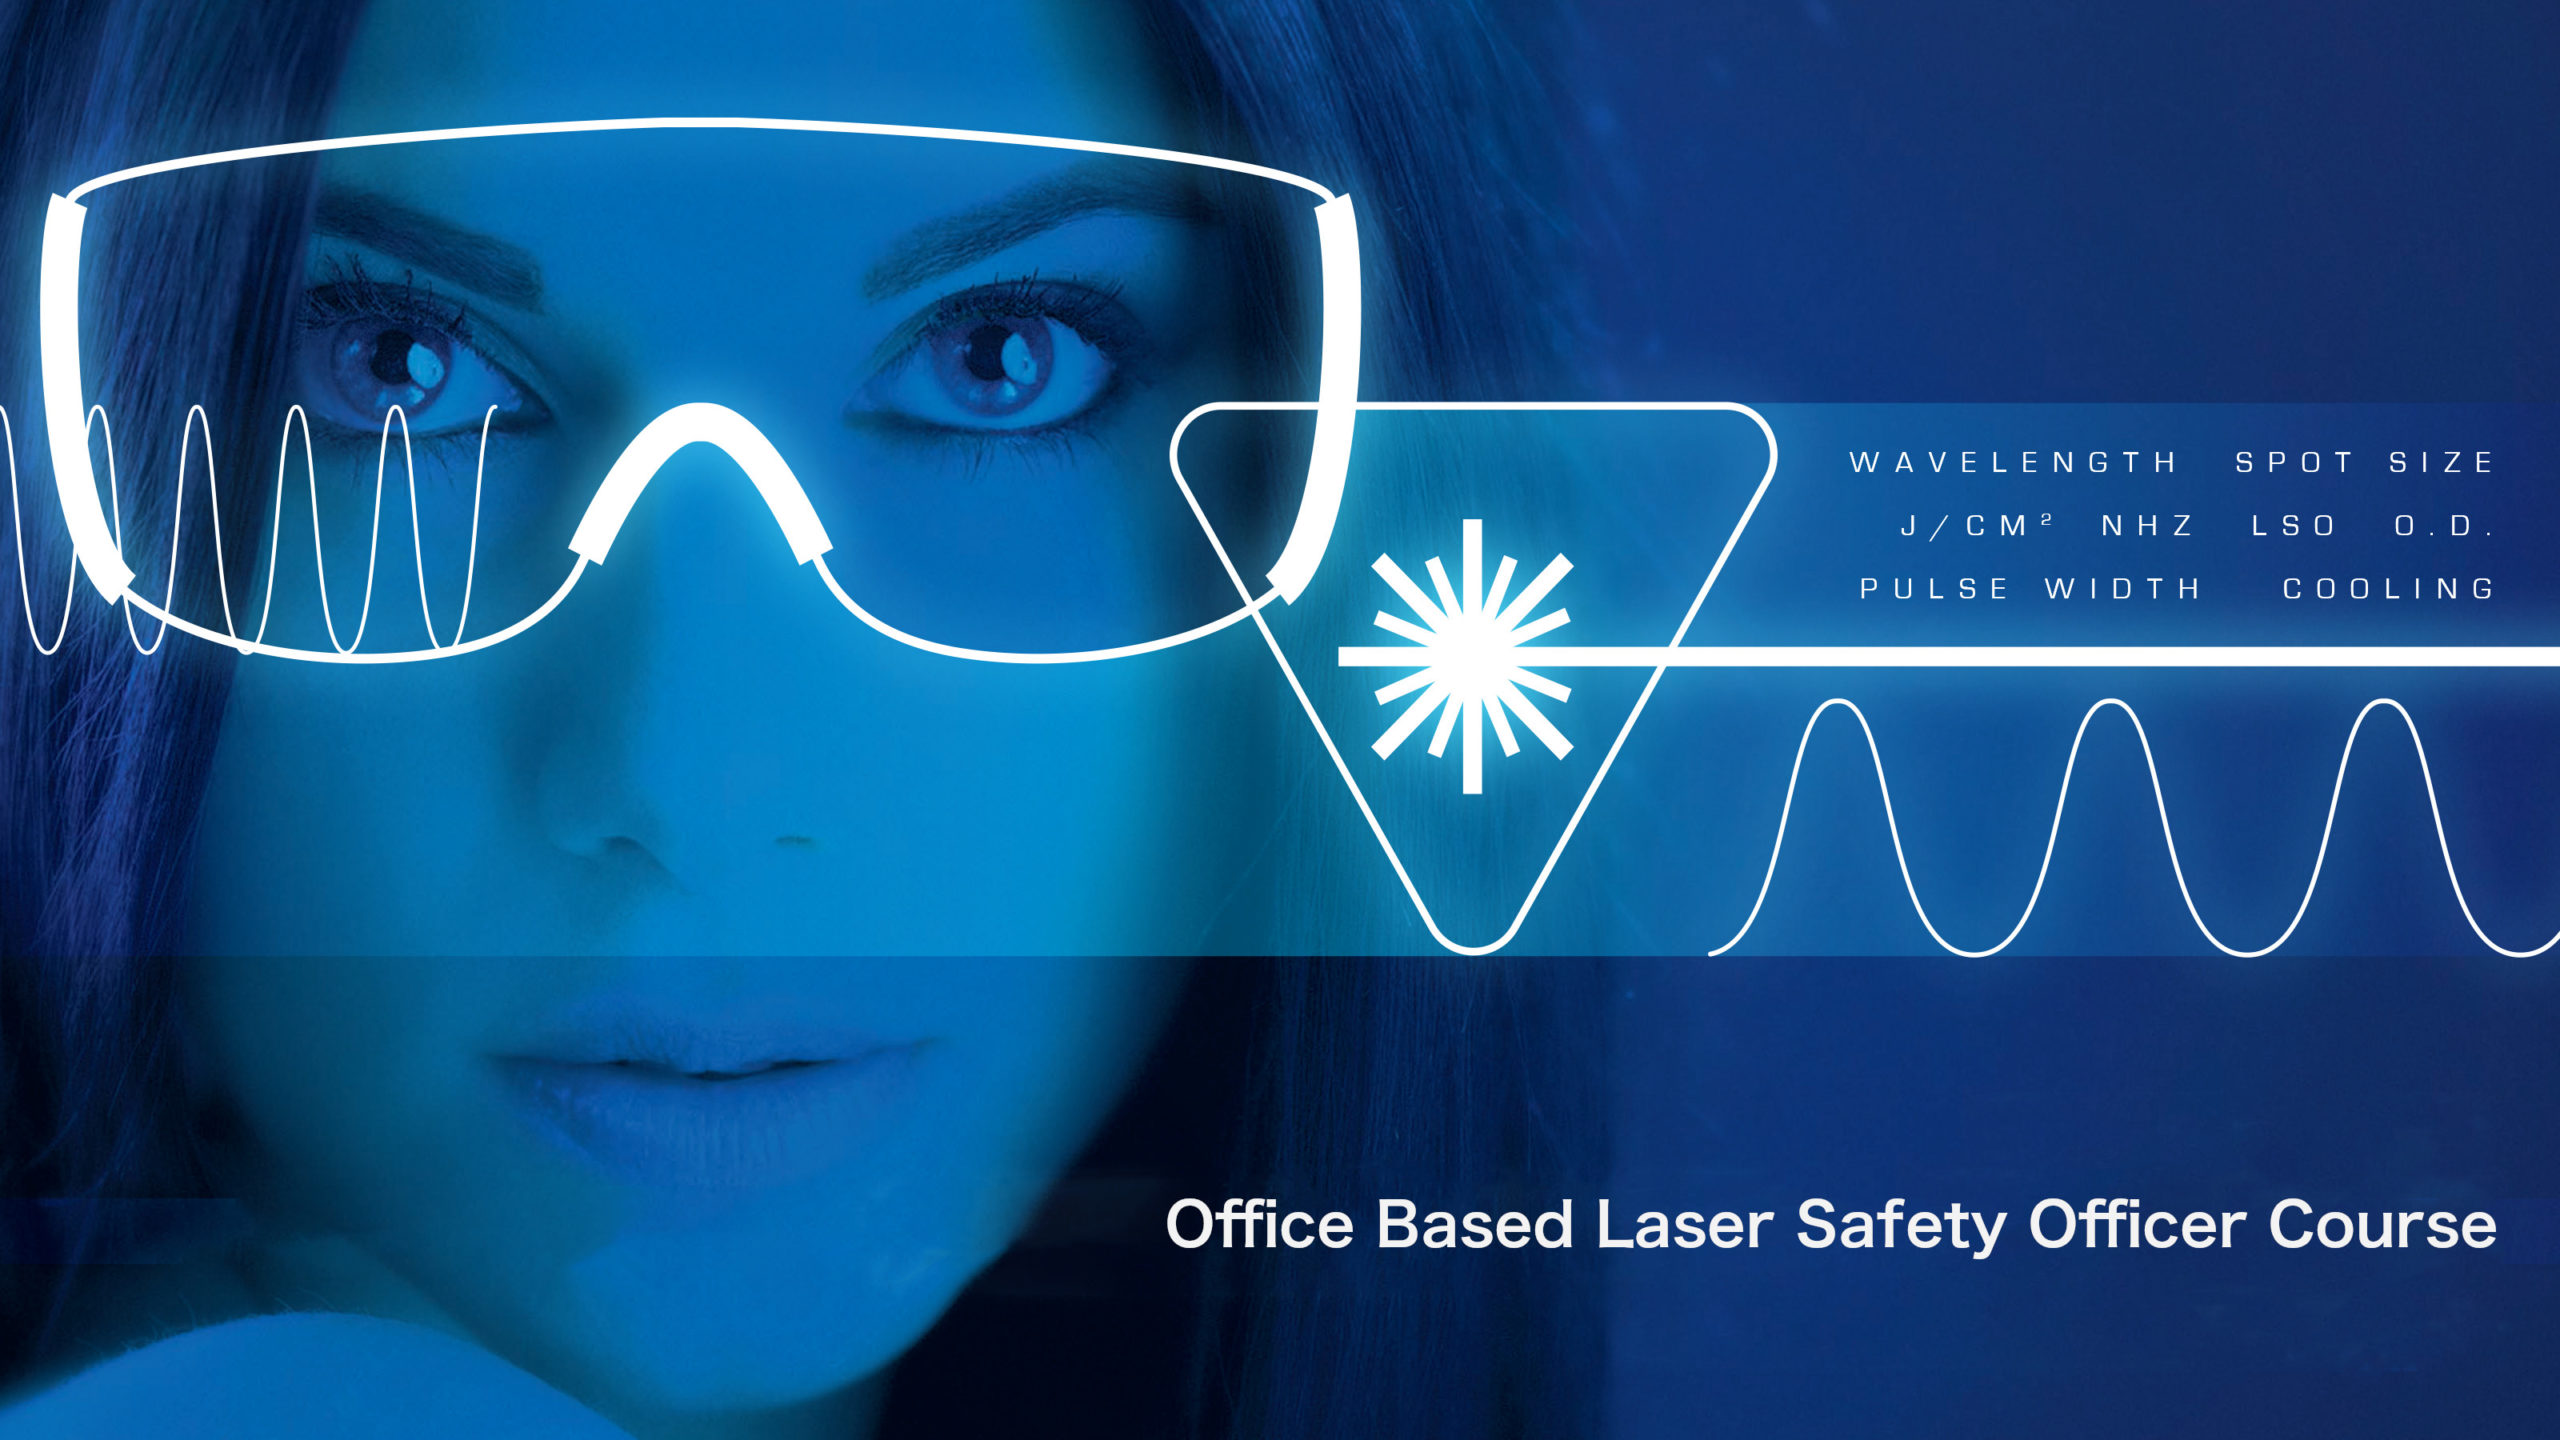 Office Based Laser Safety Officer Course